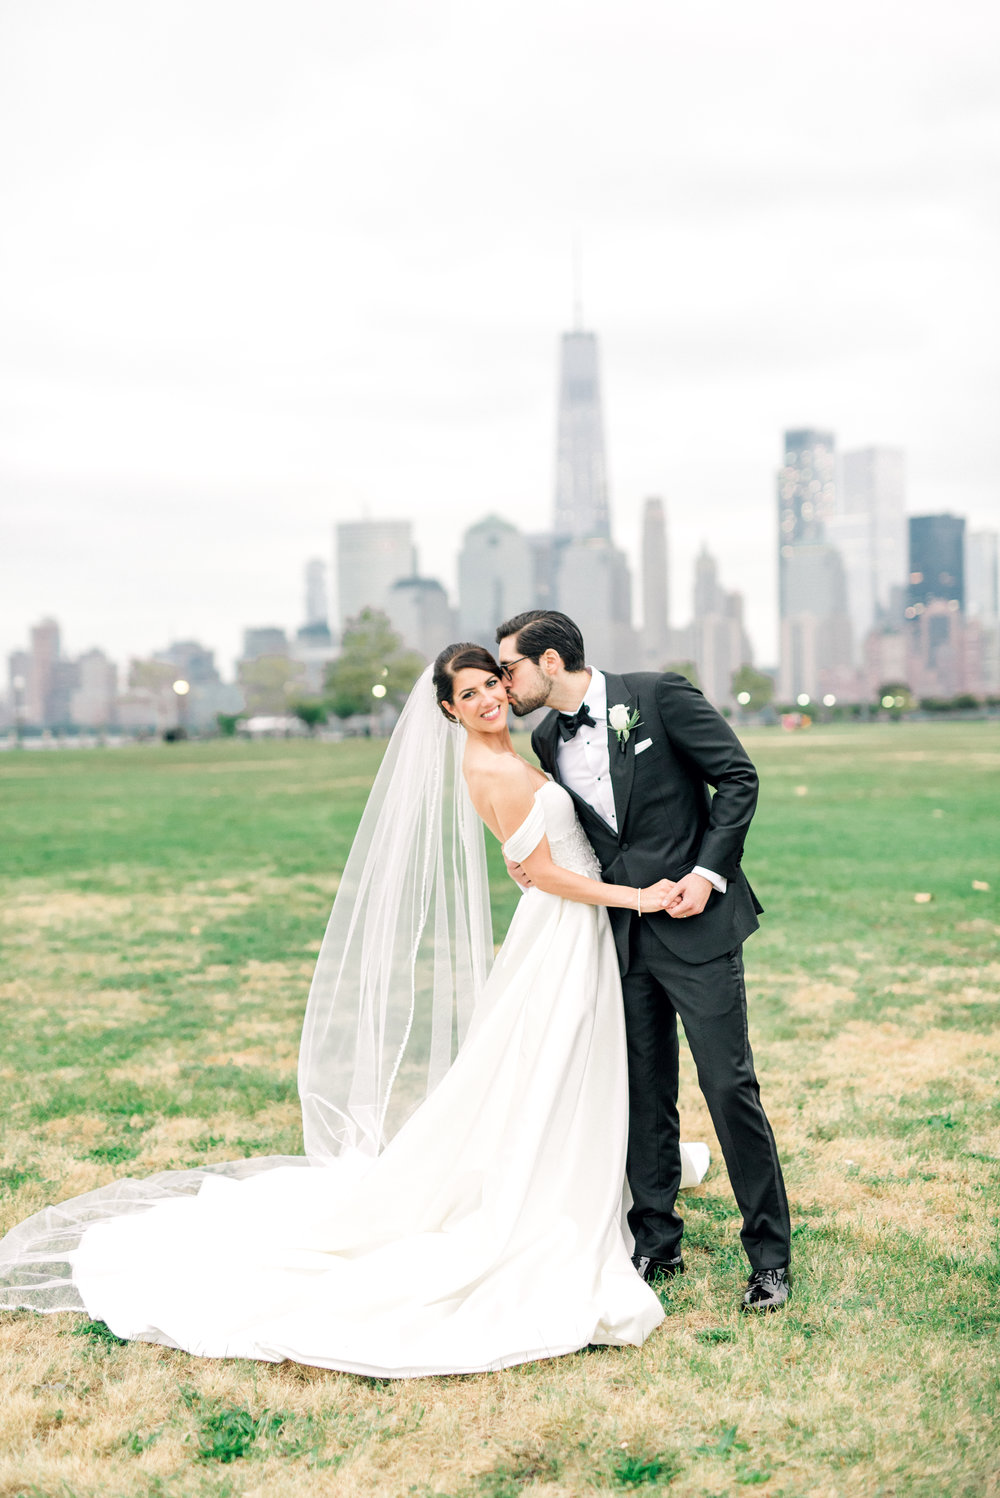 haley-richter-photography-liberty-house-wedding-jersey-city-october-old-new-york-109.jpg